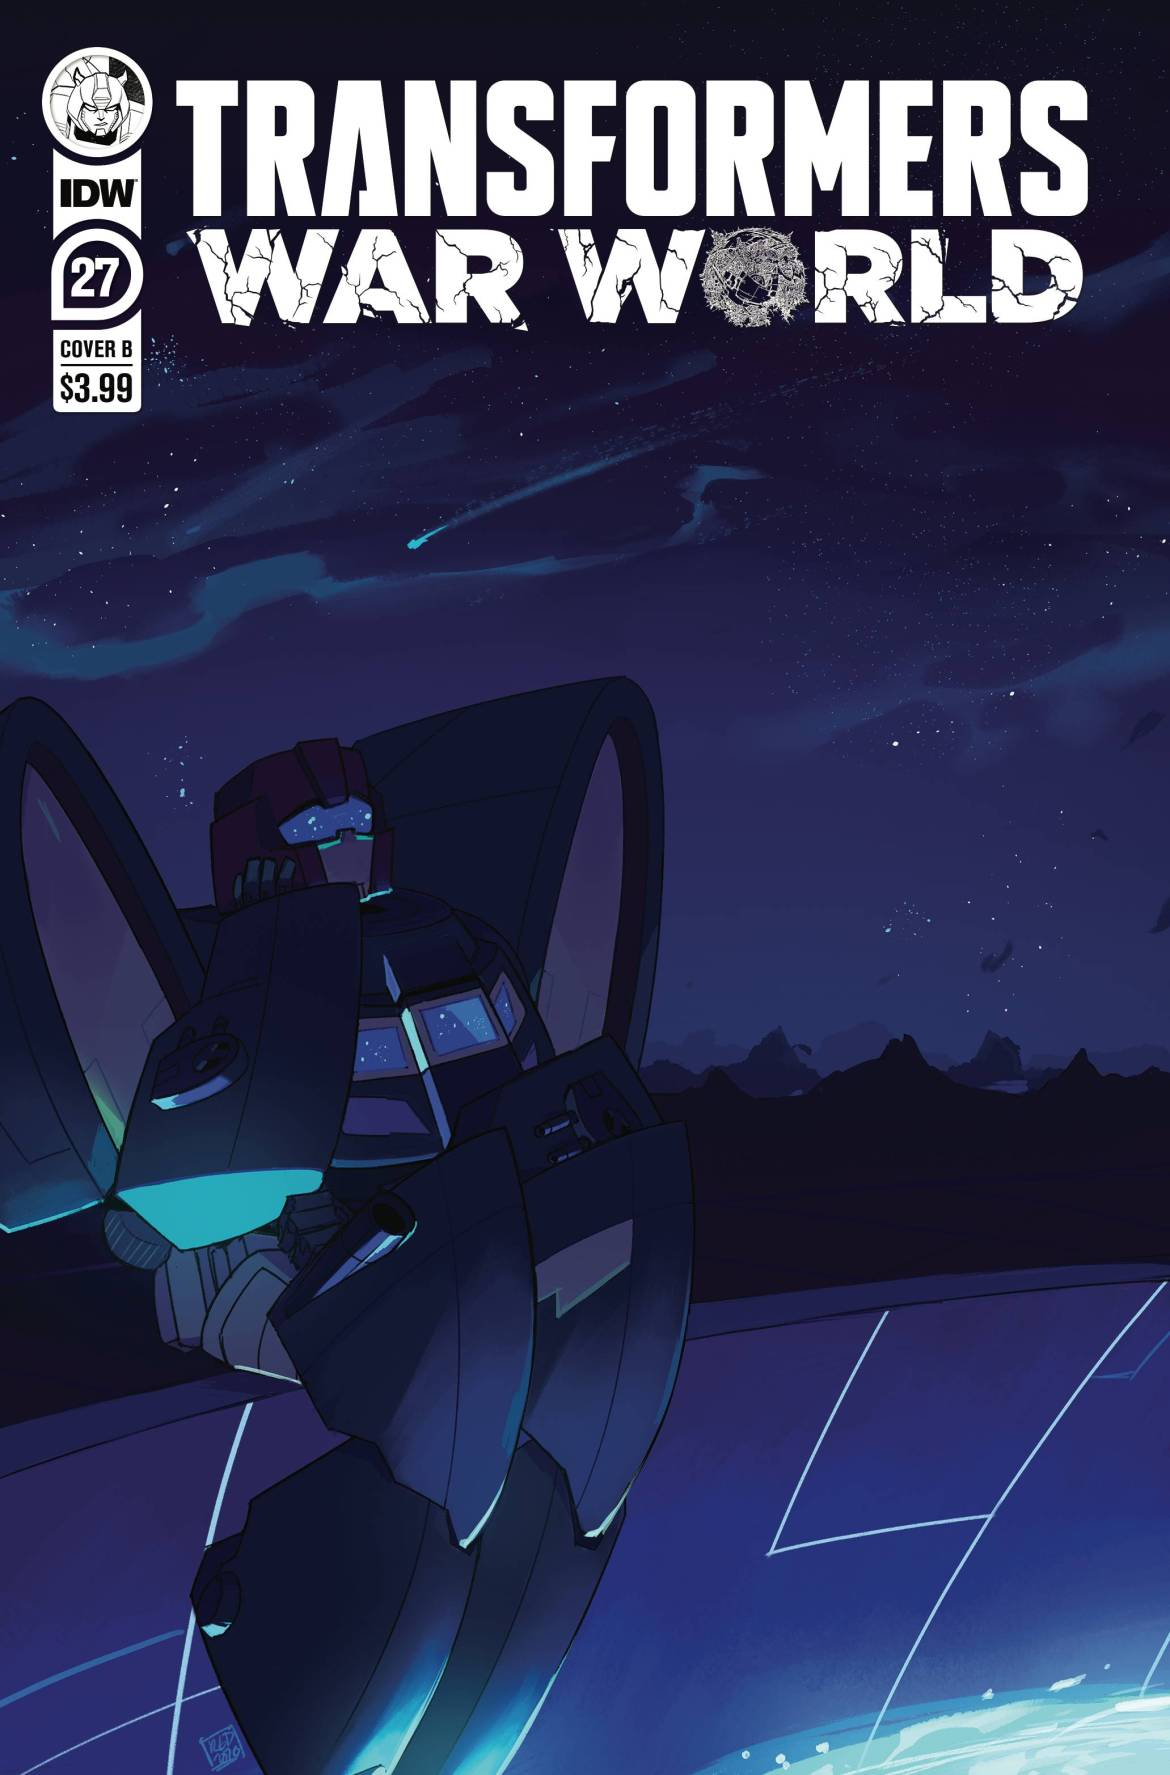 STL173340 ComicList: IDW Publishing New Releases for 01/20/2021